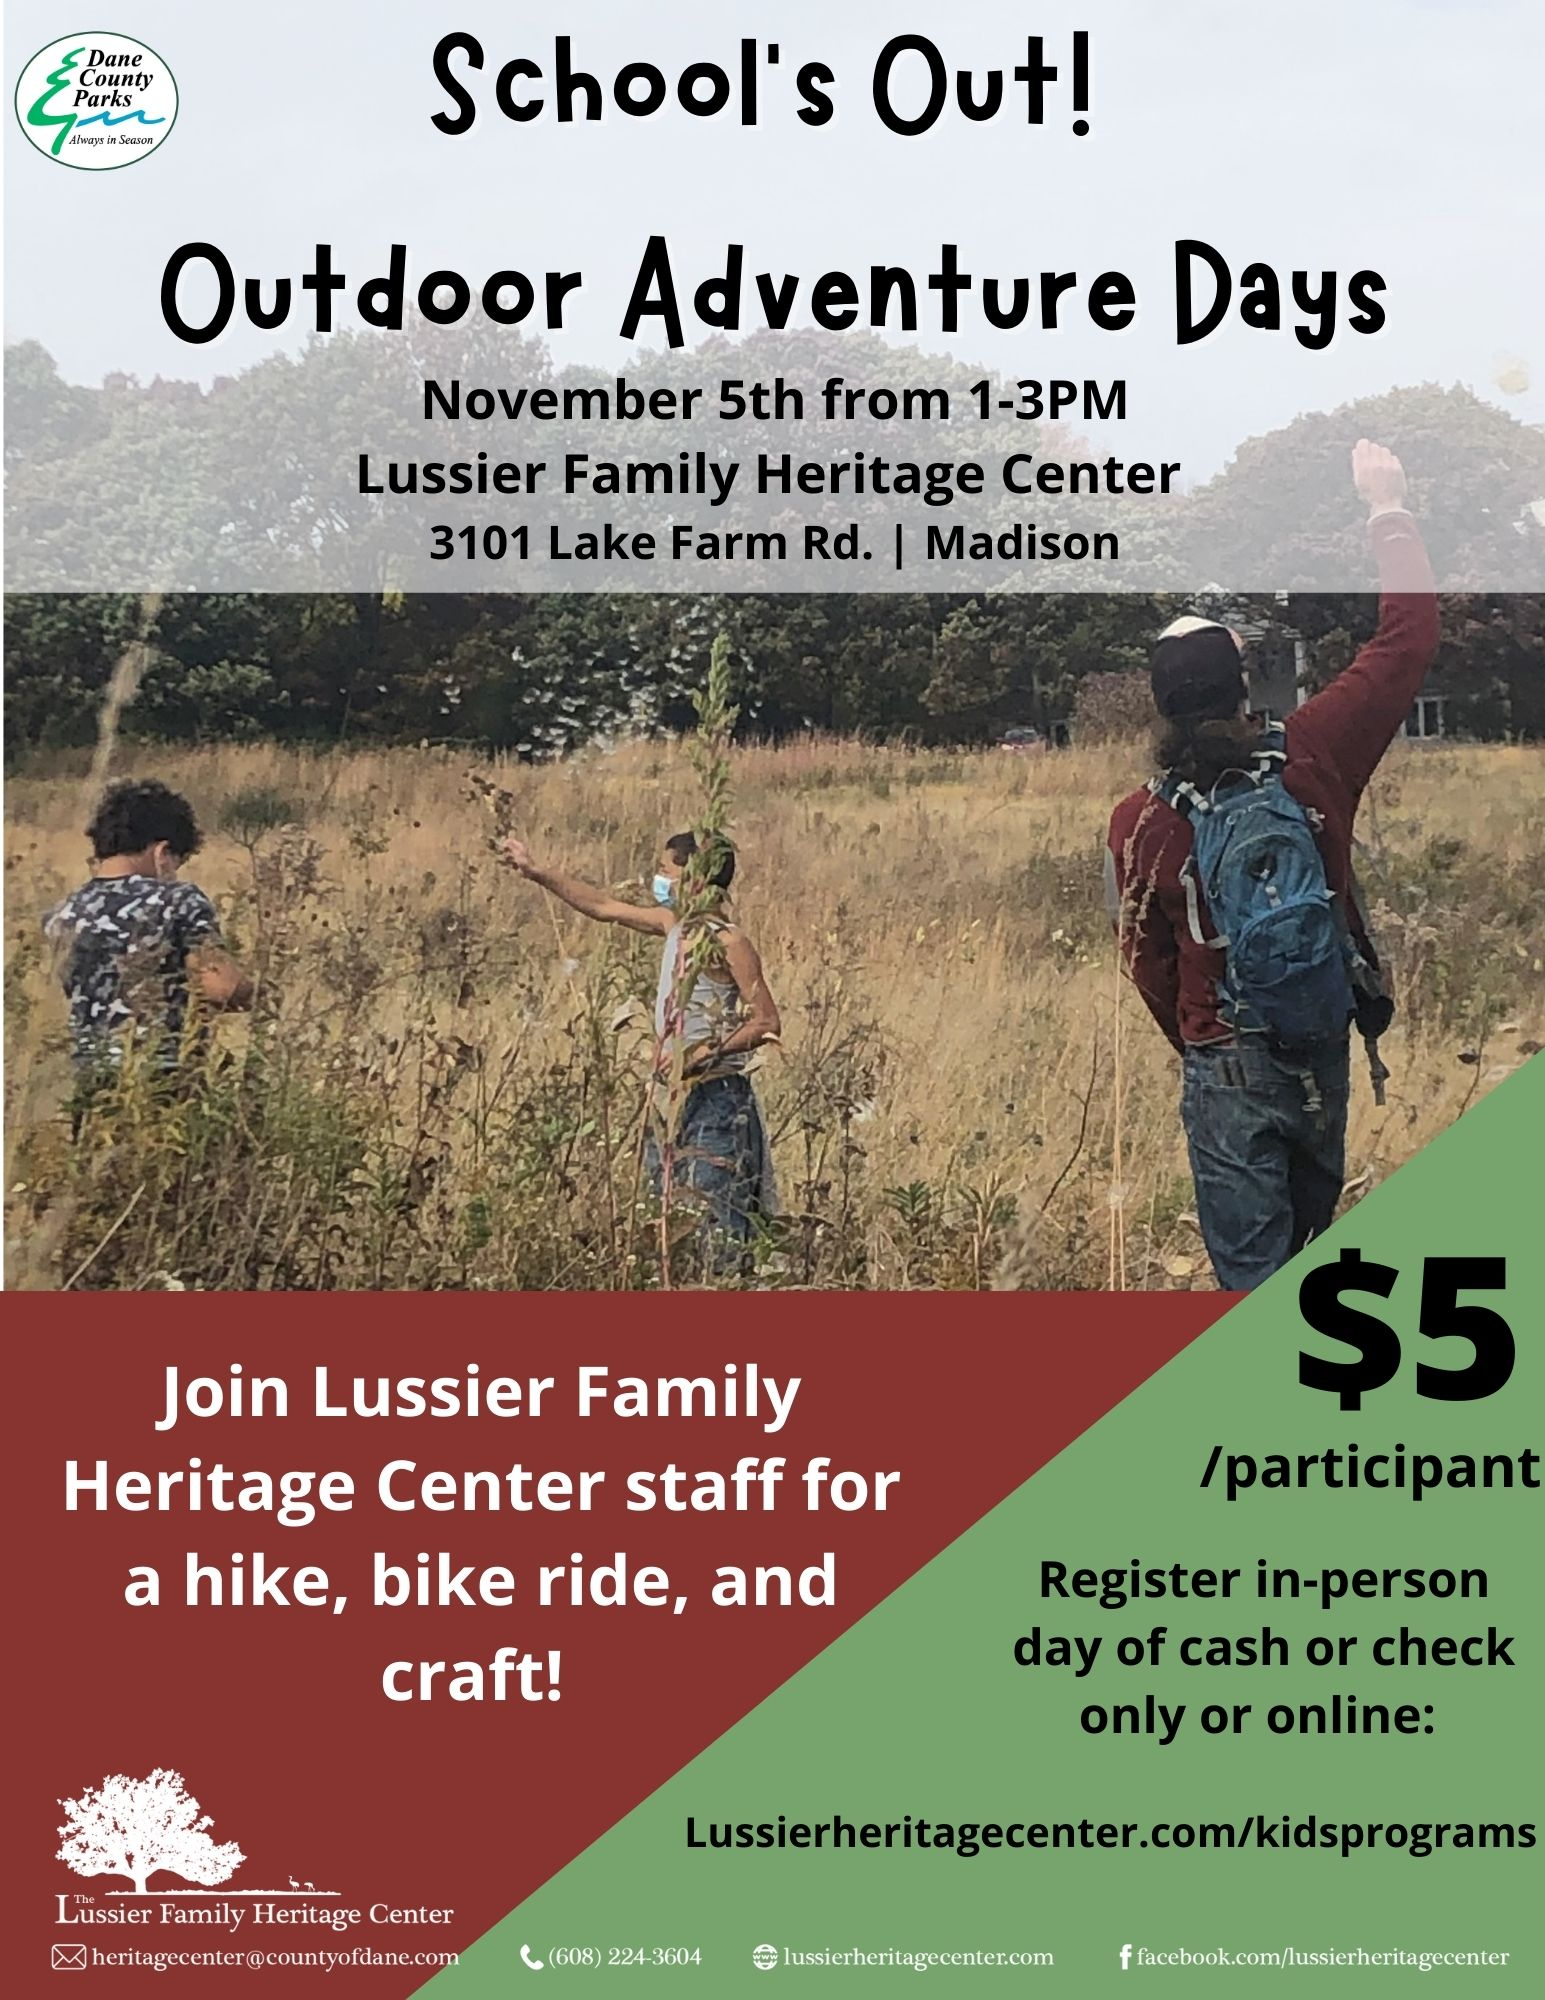 Schools Out! Outdoor Adventure Days